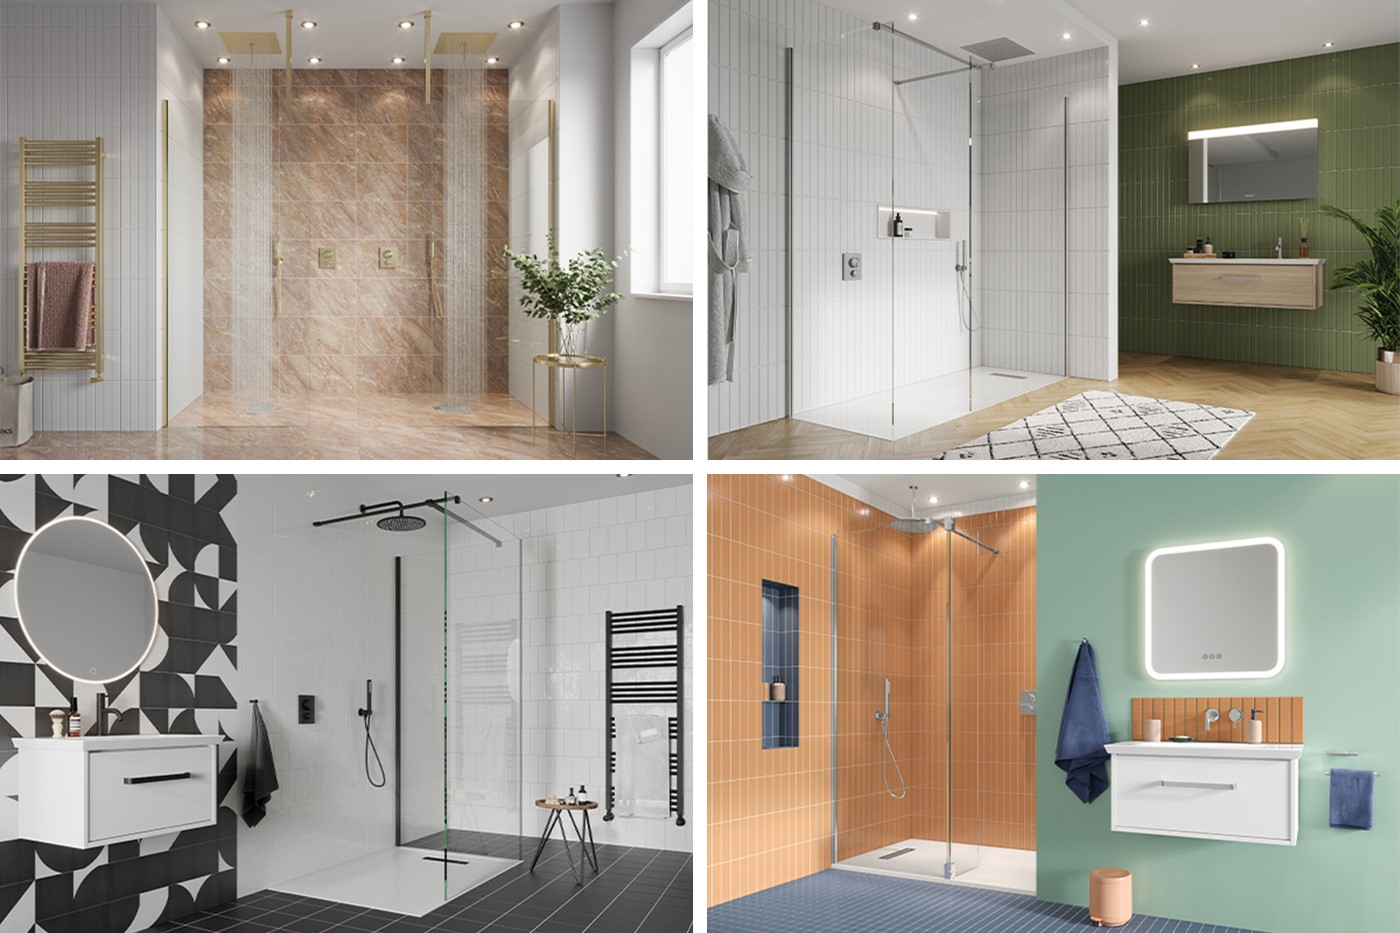 Contemporary Shower Room   Inspire a sense of serenity in your home with GALLERY 10 luxury walk in showers